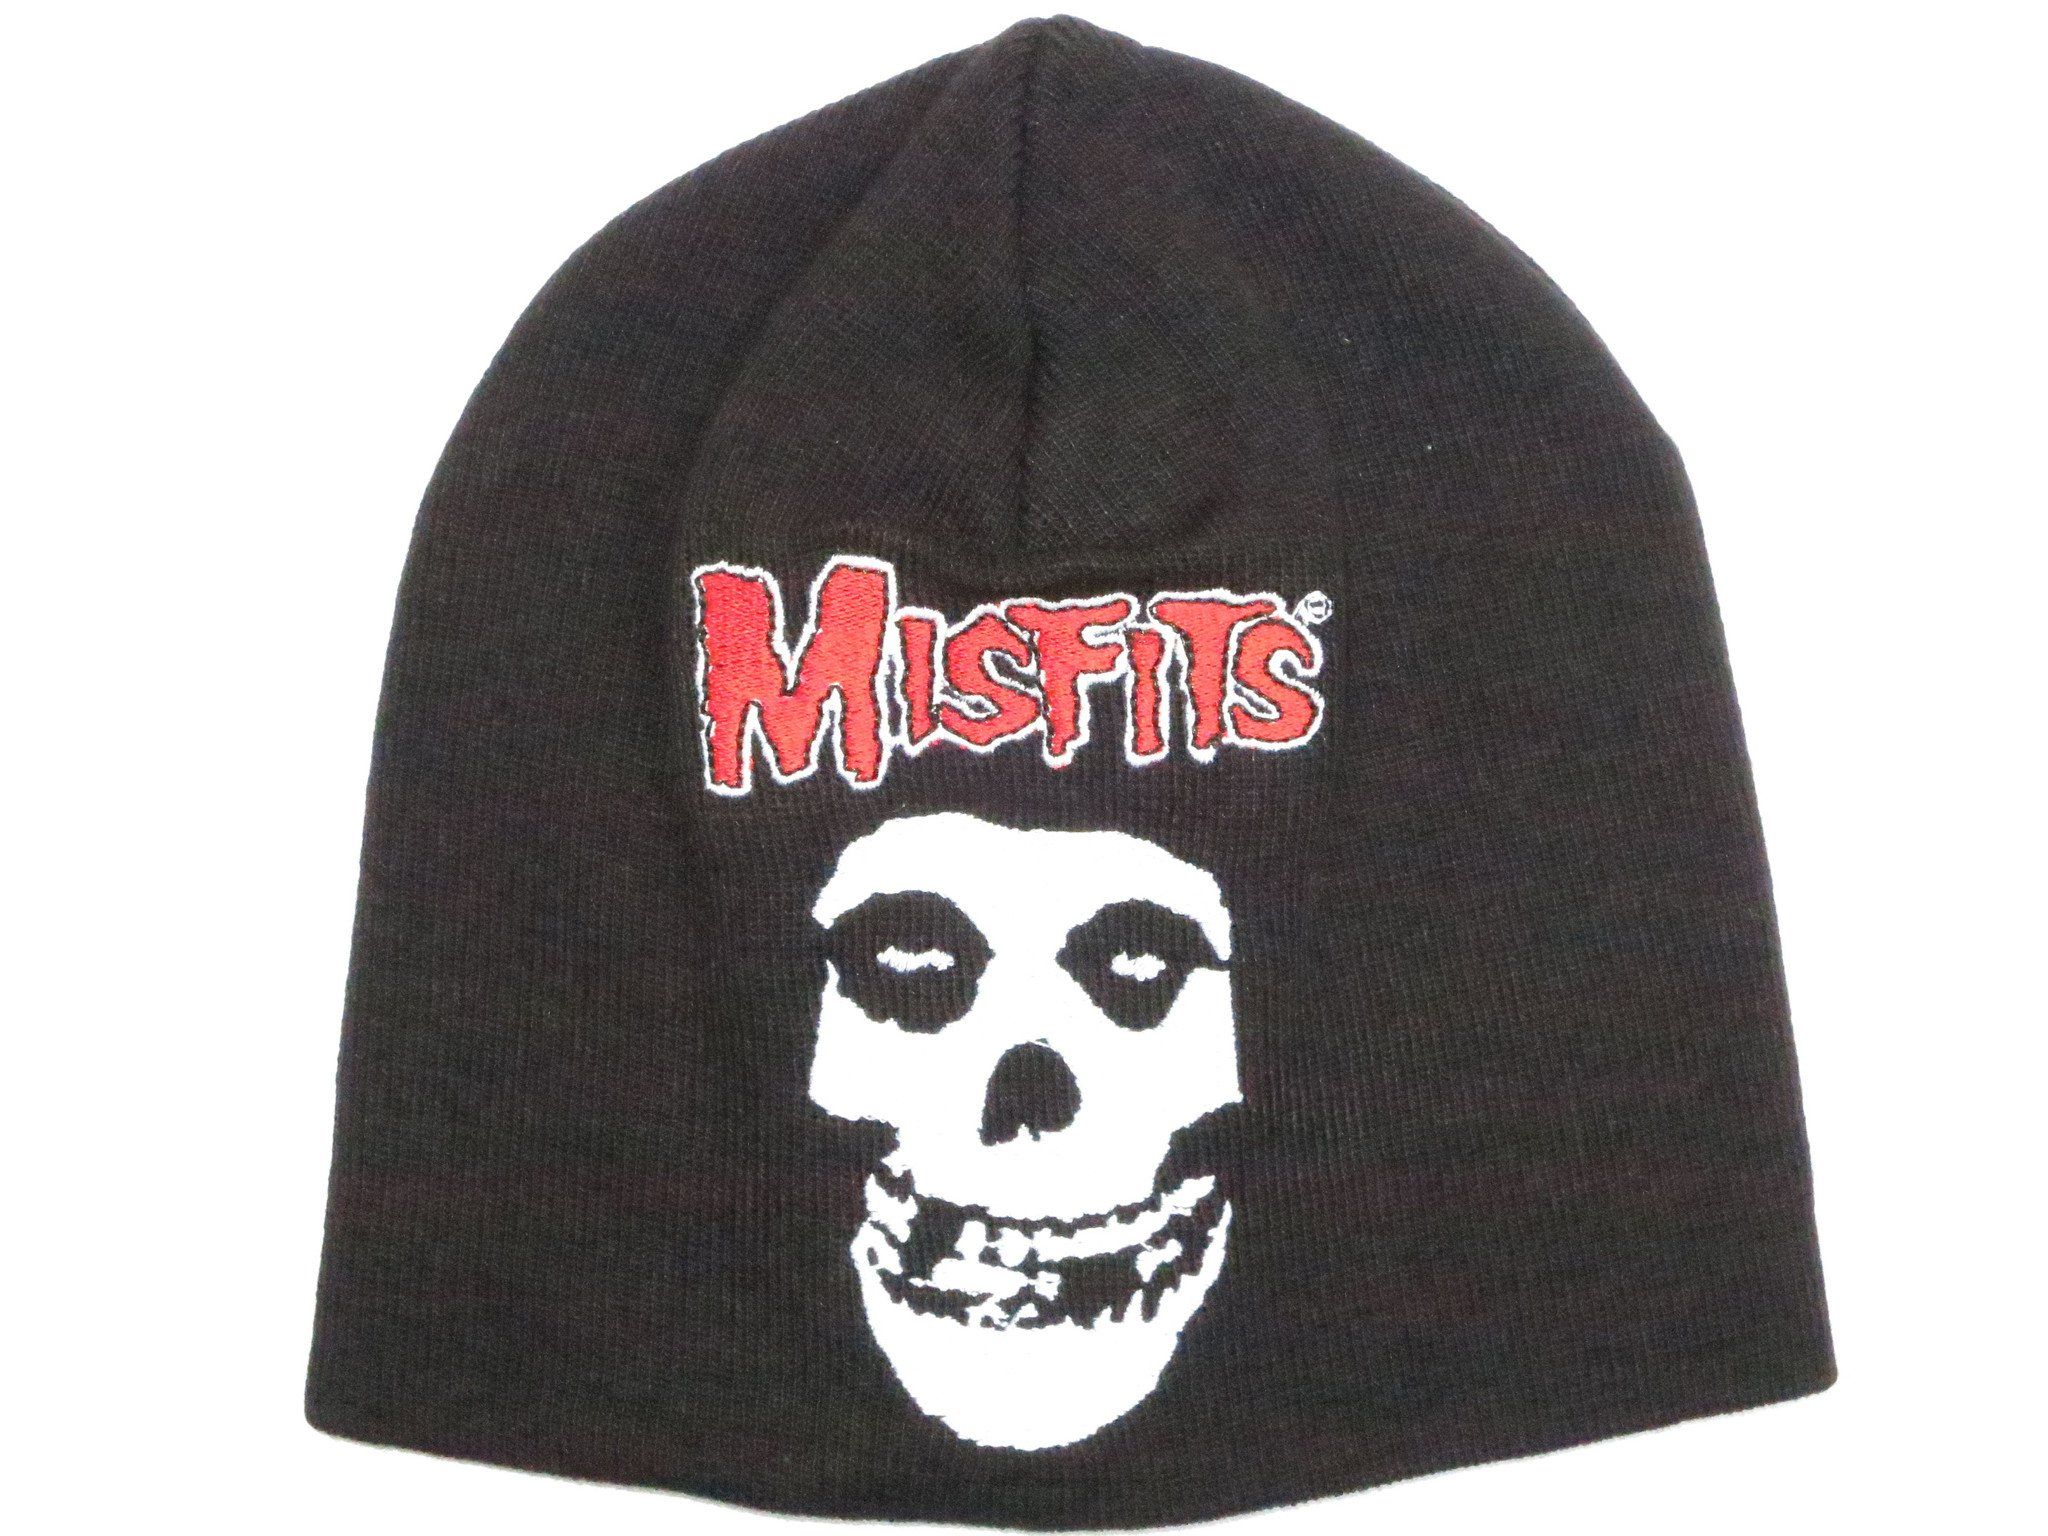 MISFITS Punk Skull Winter Wool Beanie Hat BNWT - A Patch E Store 1cce08d59d9